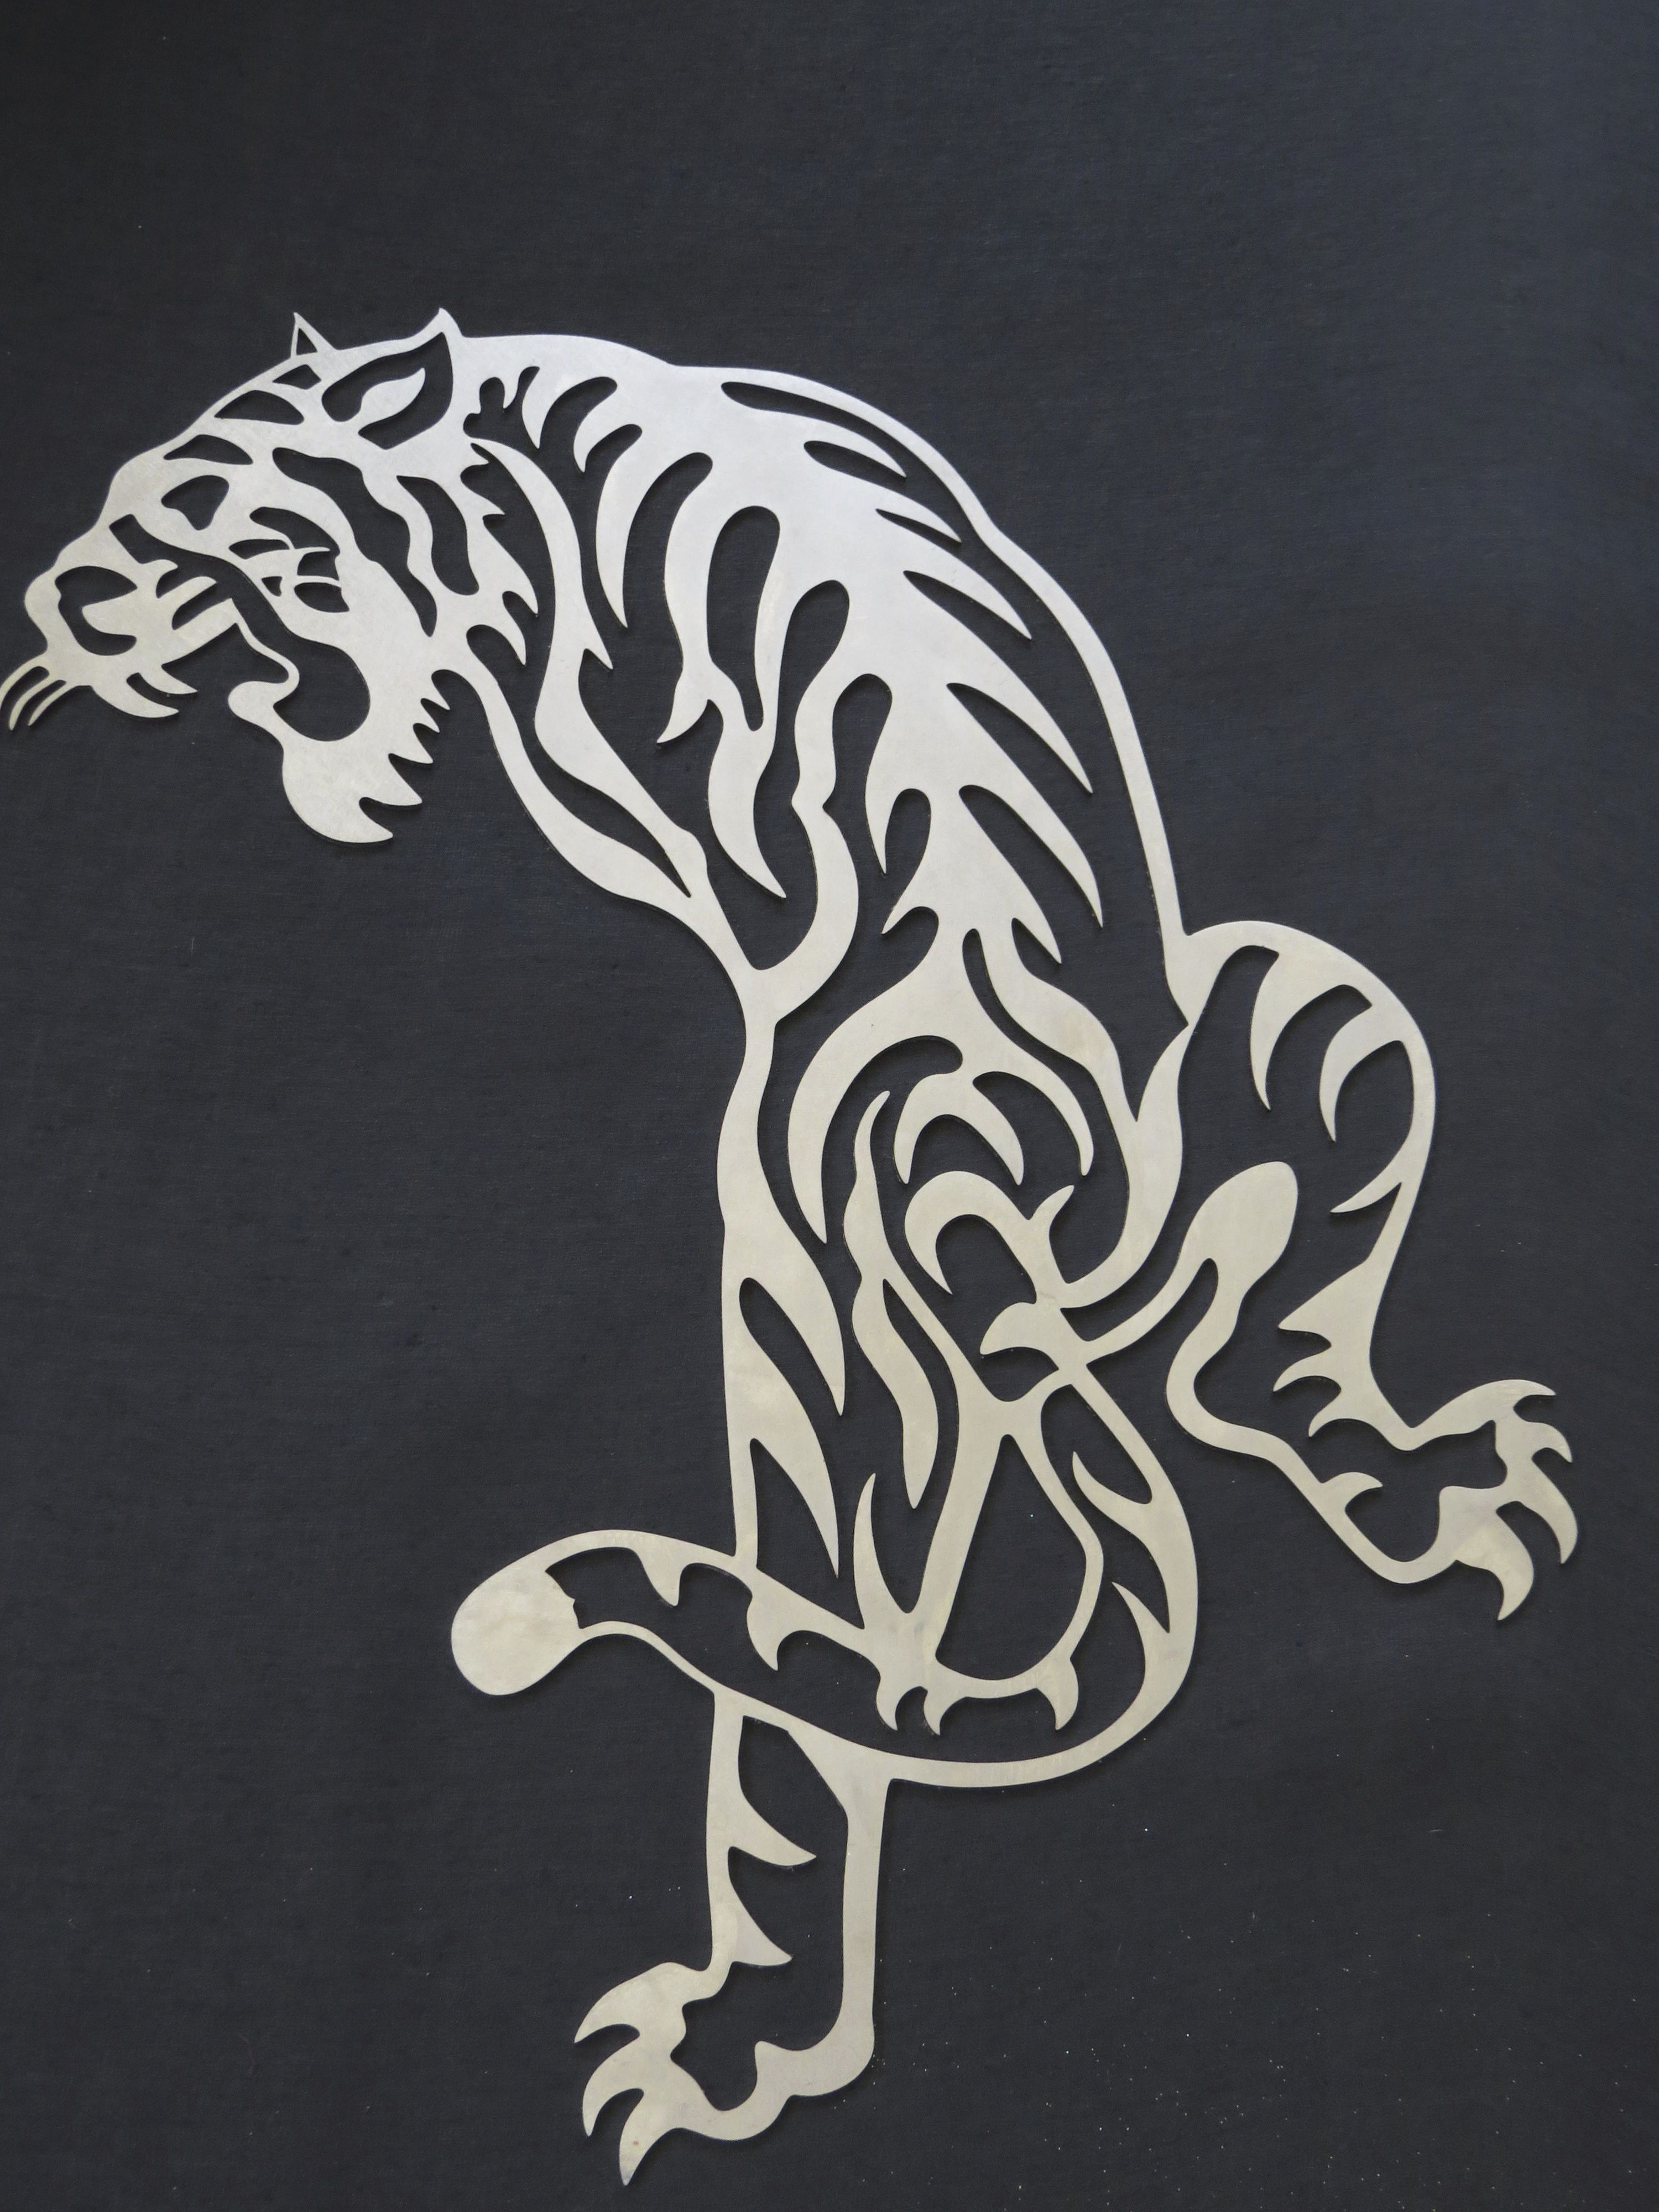 Wall Art Stainless Steel Laser Cut Tiger Awesome